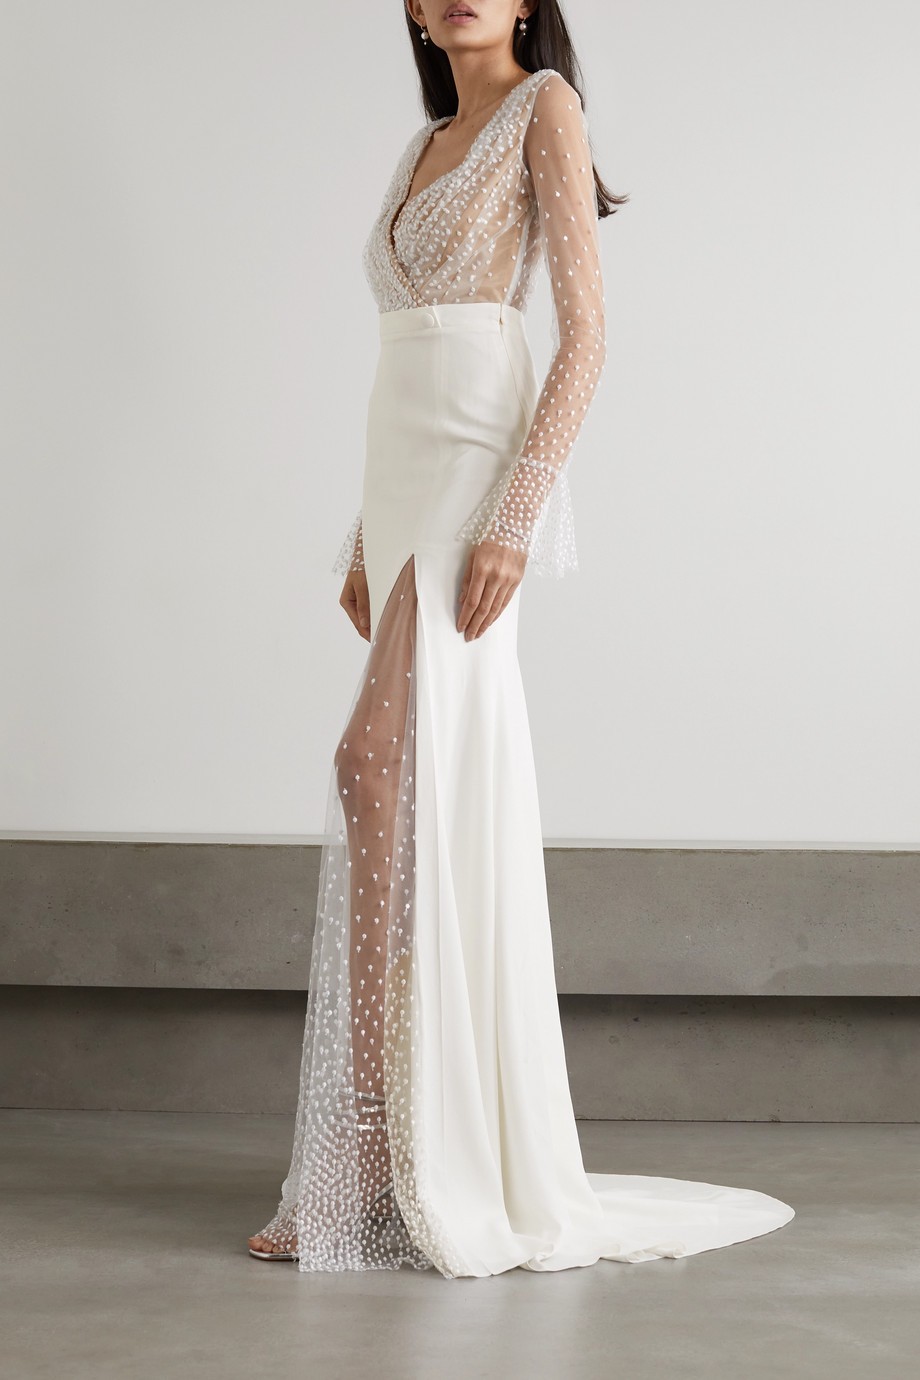 RIME ARODAKY Joni Swiss-dot tulle and crepe gown